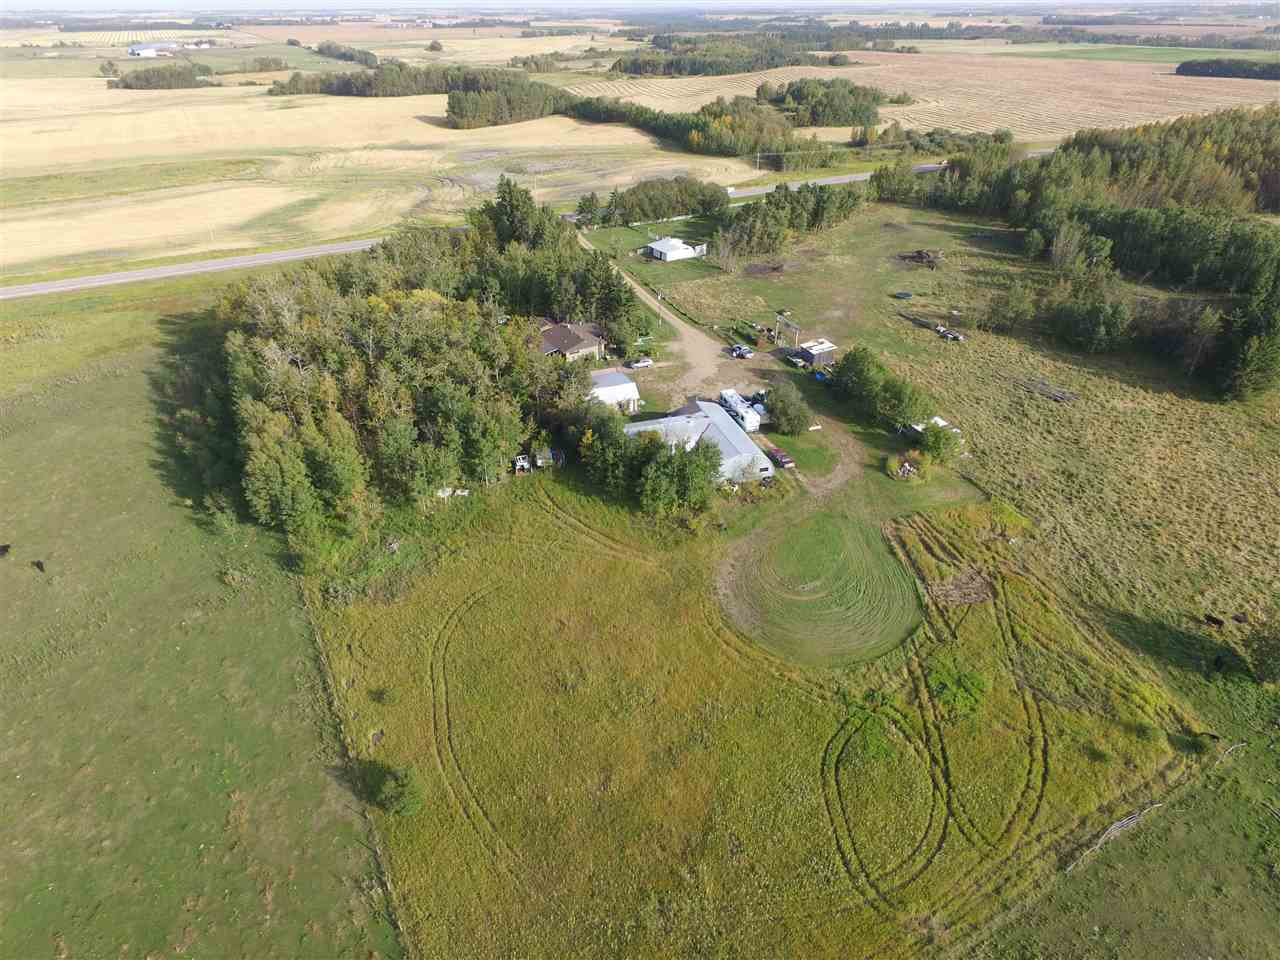 Photo 48: Photos: 472050A Hwy 814: Rural Wetaskiwin County House for sale : MLS®# E4213442